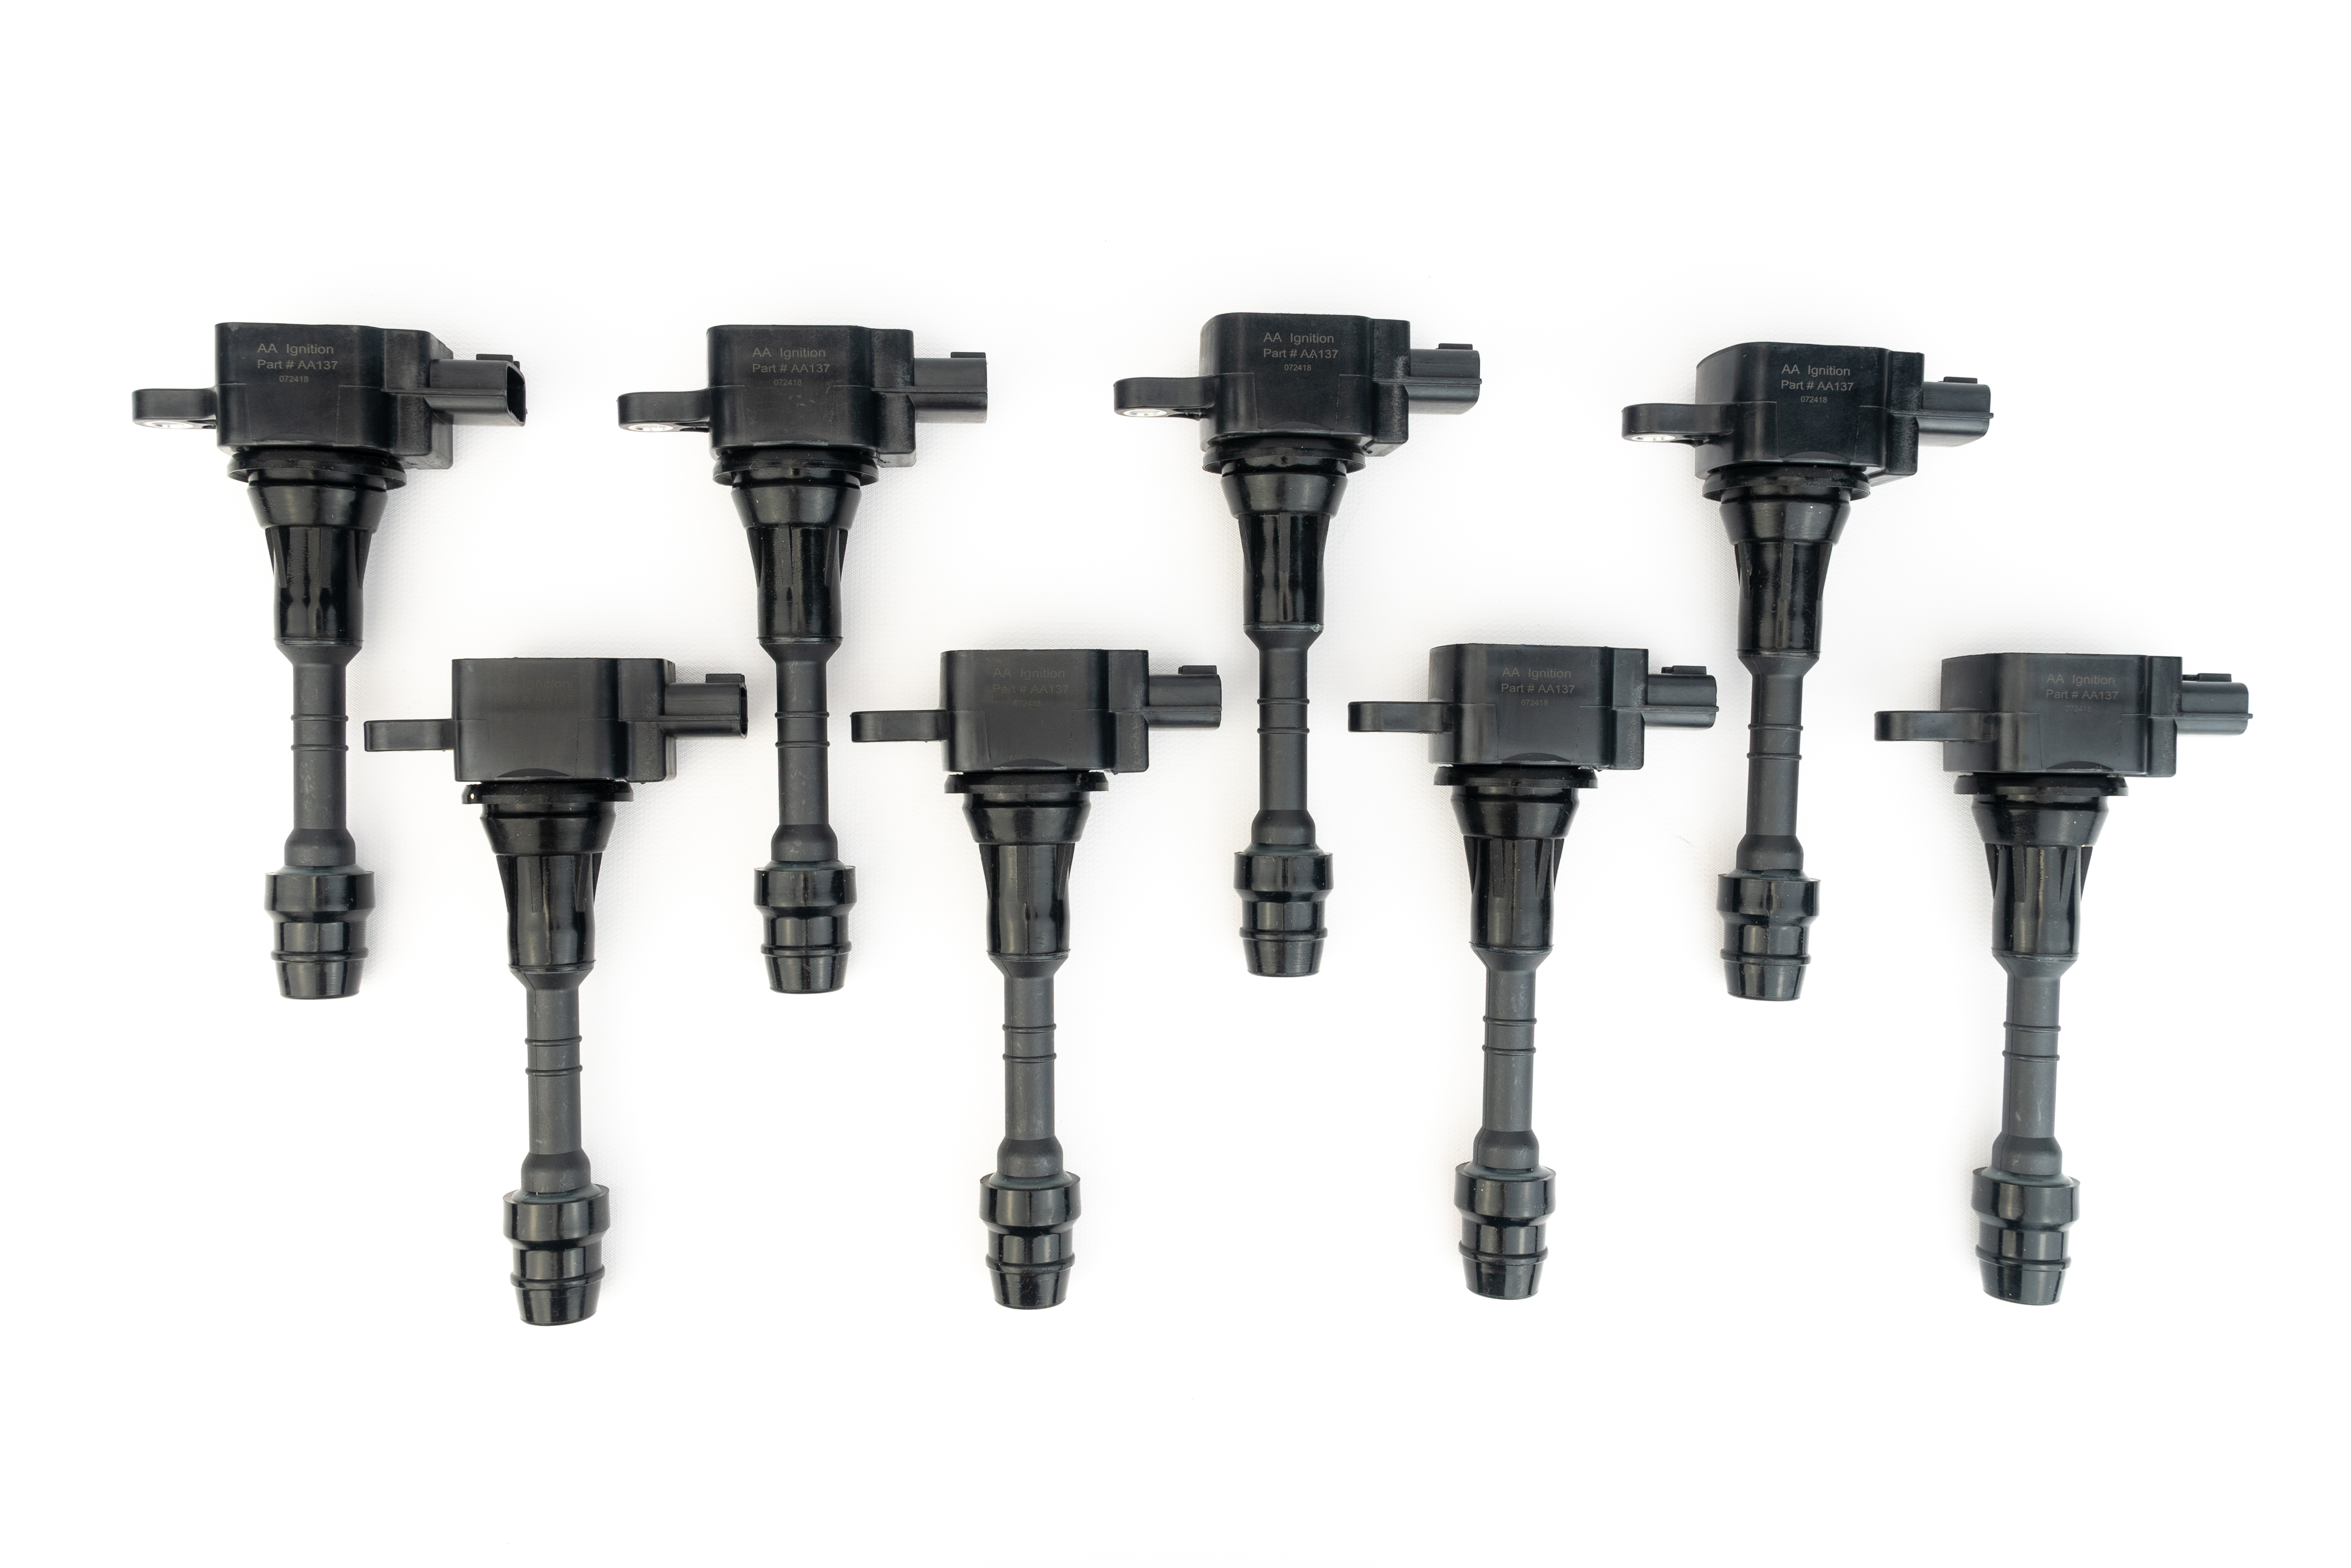 Ignition Coil Pack Set of 8 - Fits Nissan Titan, Armada & Infiniti QX56 5.6L Image